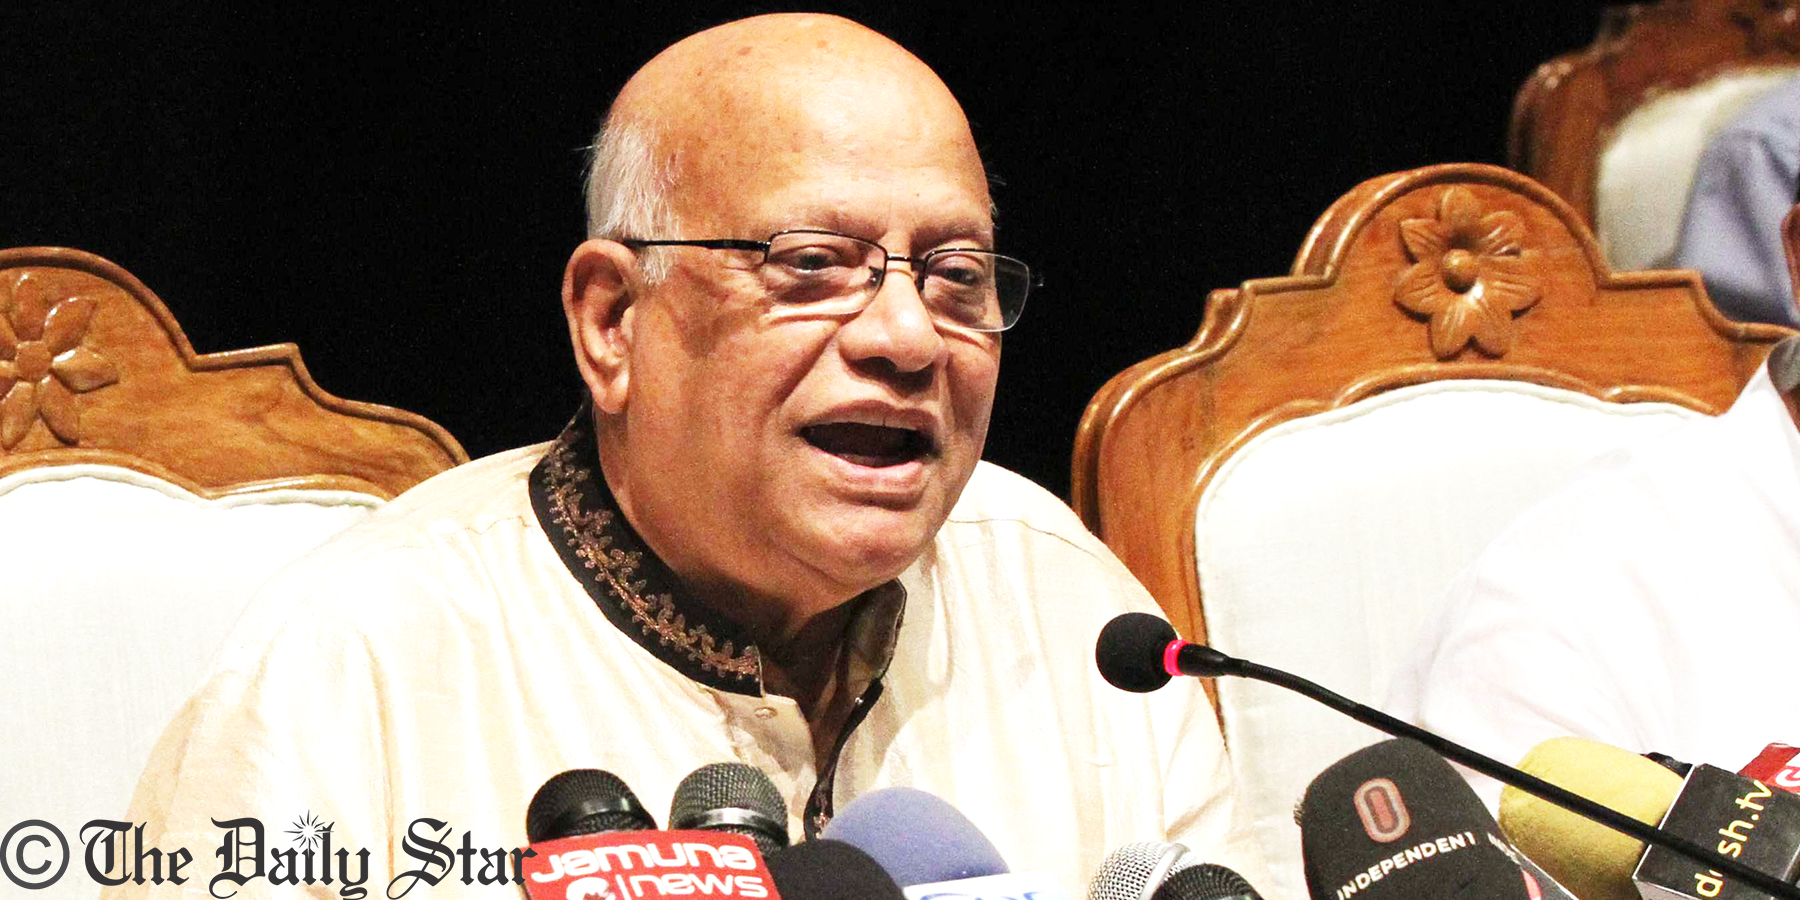 Finance Minister AMA Muhith speakes in a post-budget briefing in the Osmani Memorial Auditorium in the capital. Photo: Palash Khan